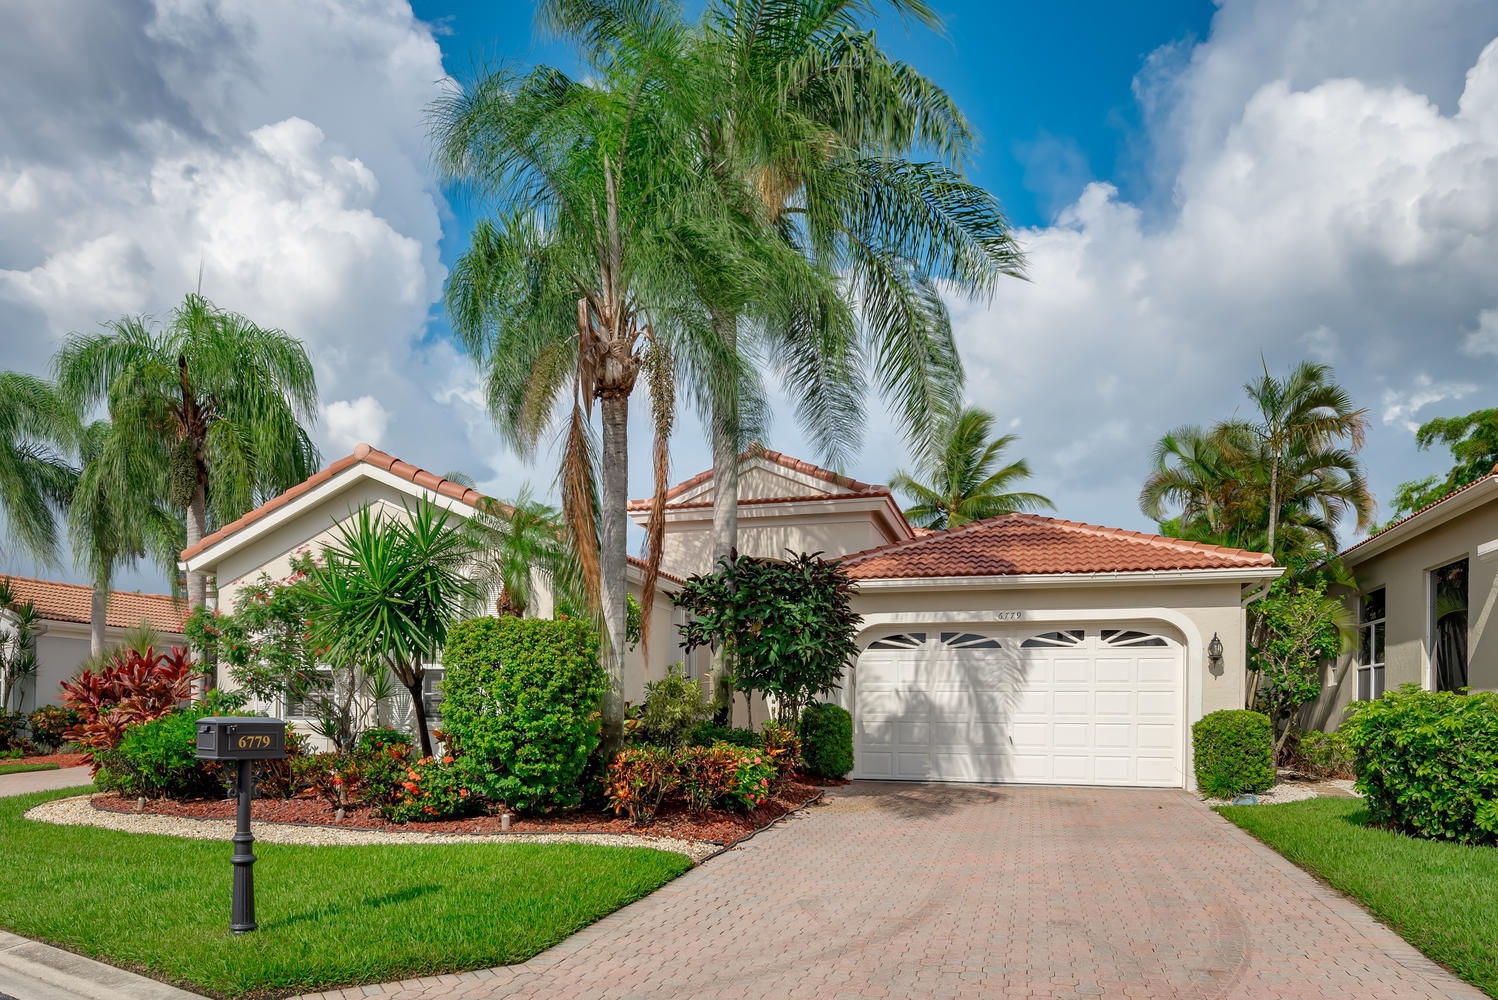 Photo of 6779 Portside Drive, Boca Raton, FL 33496